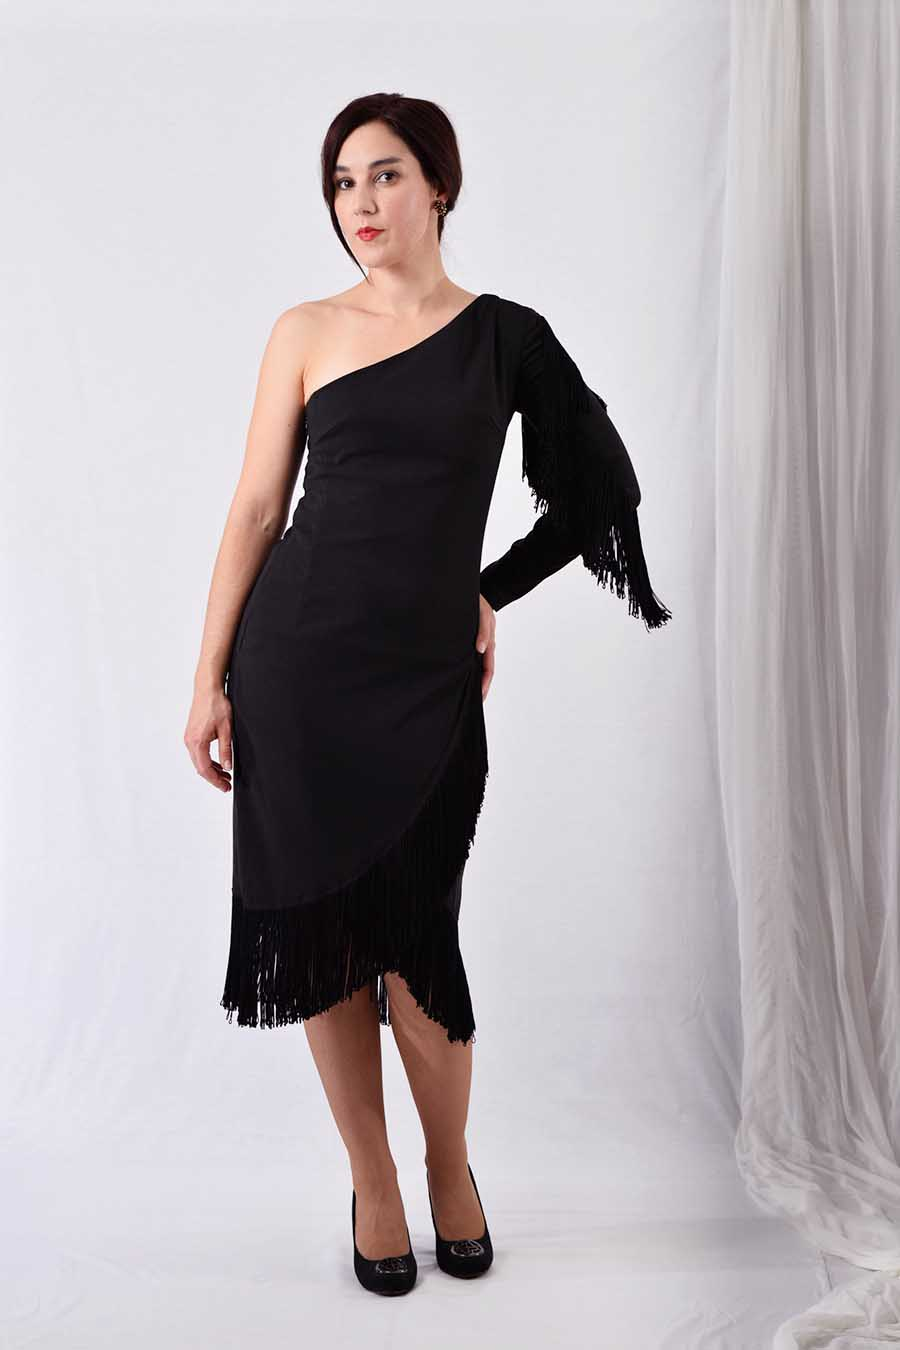 Asymmetric one-sleeve cocktail dress in black with fringes